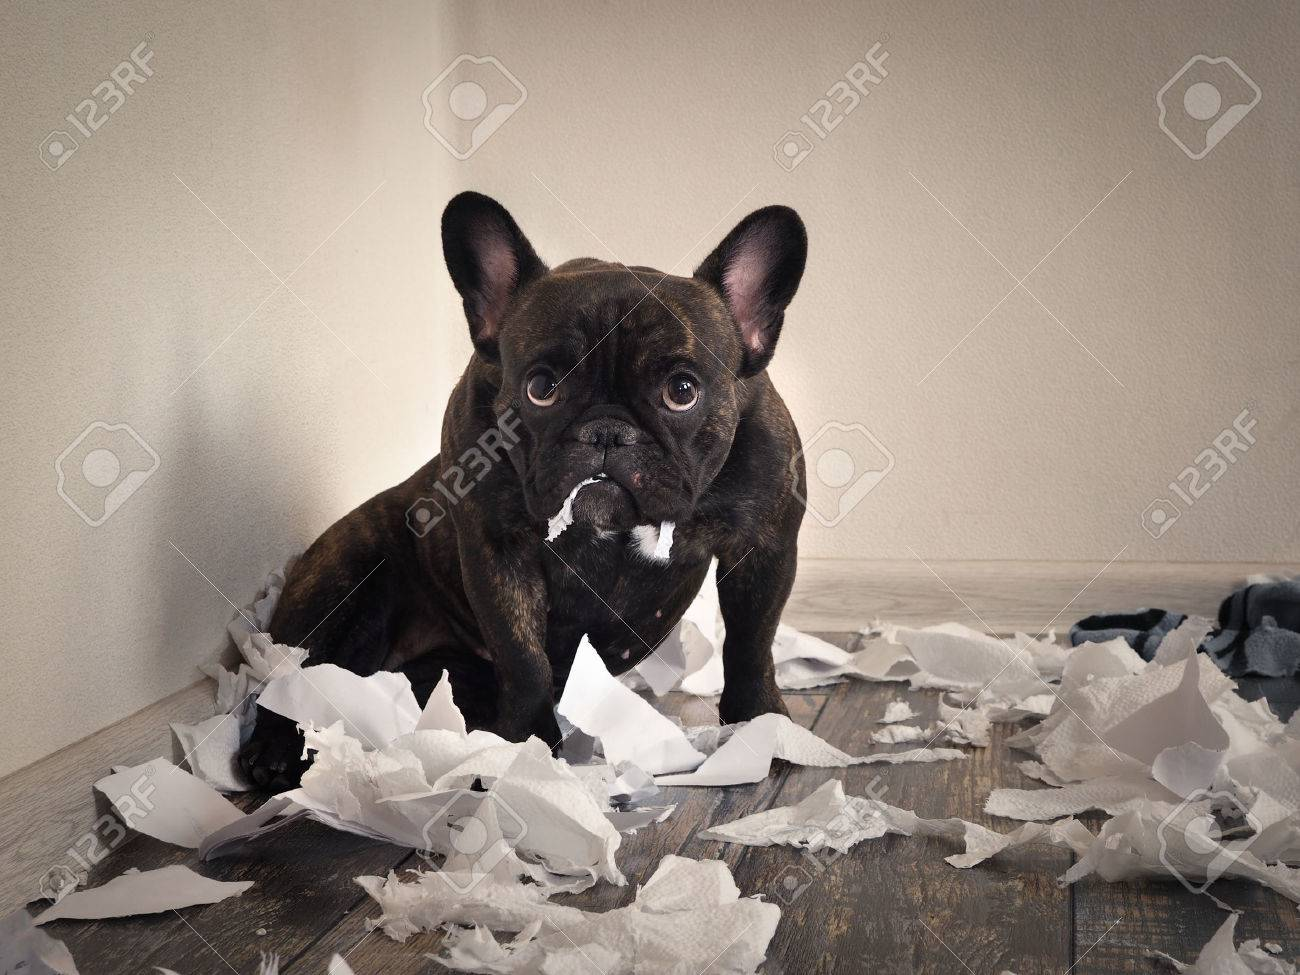 Blame the dog made a mess in the room. Playful puppy French bulldog - 78496679